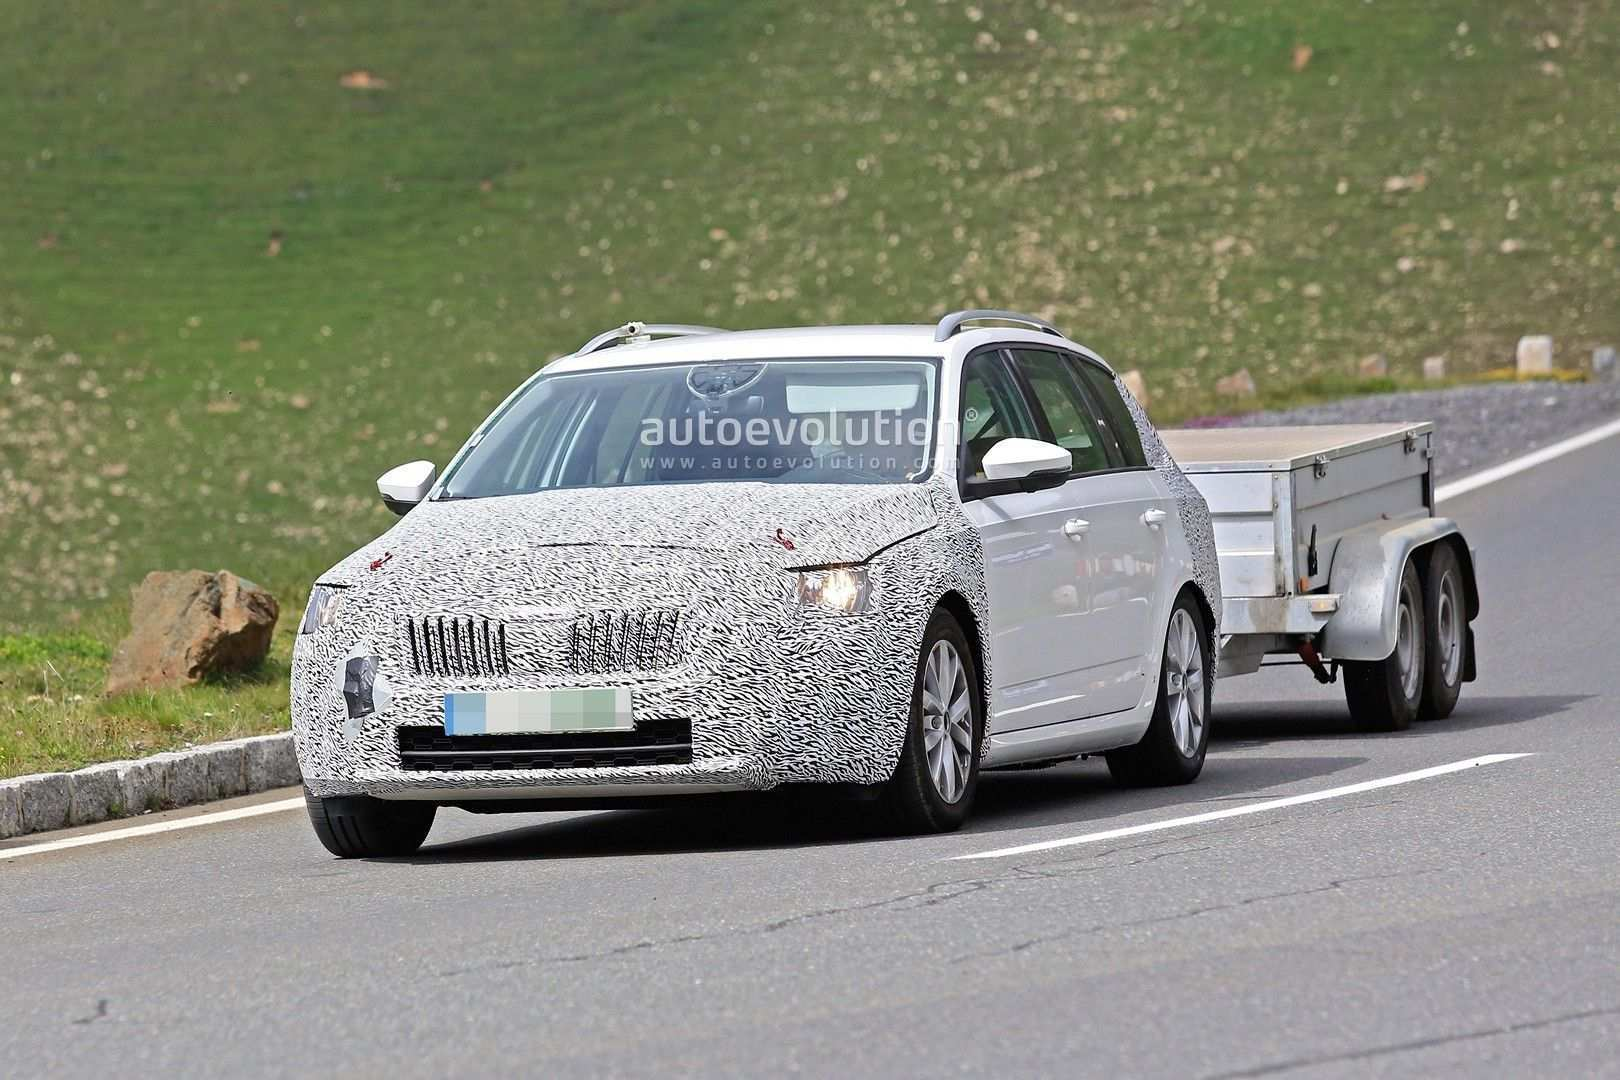 33 New Spy Shots Skoda Superb Release Date And Concept